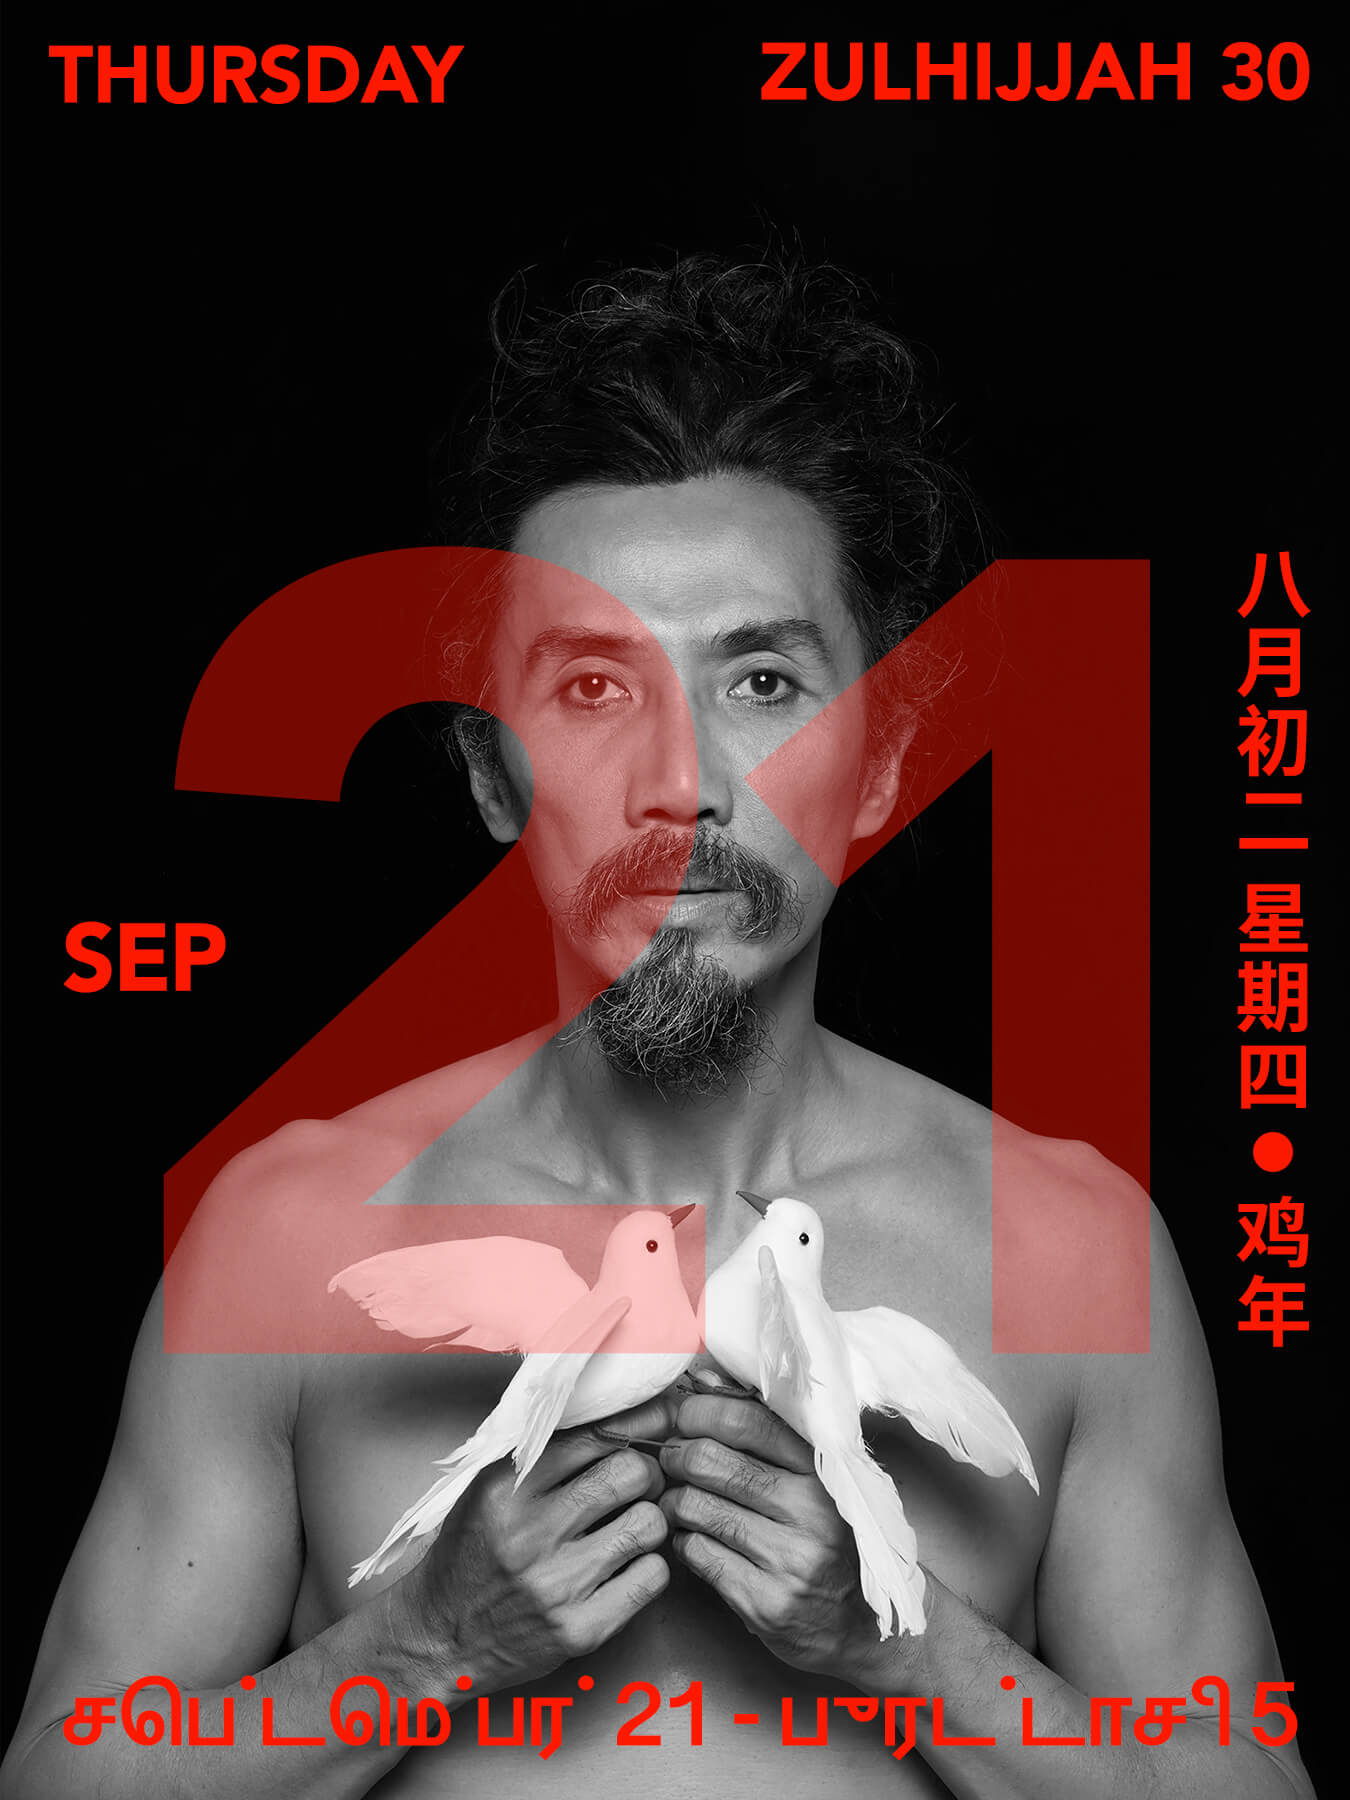 21 Sep 2017: Derong is holding a pair of doves